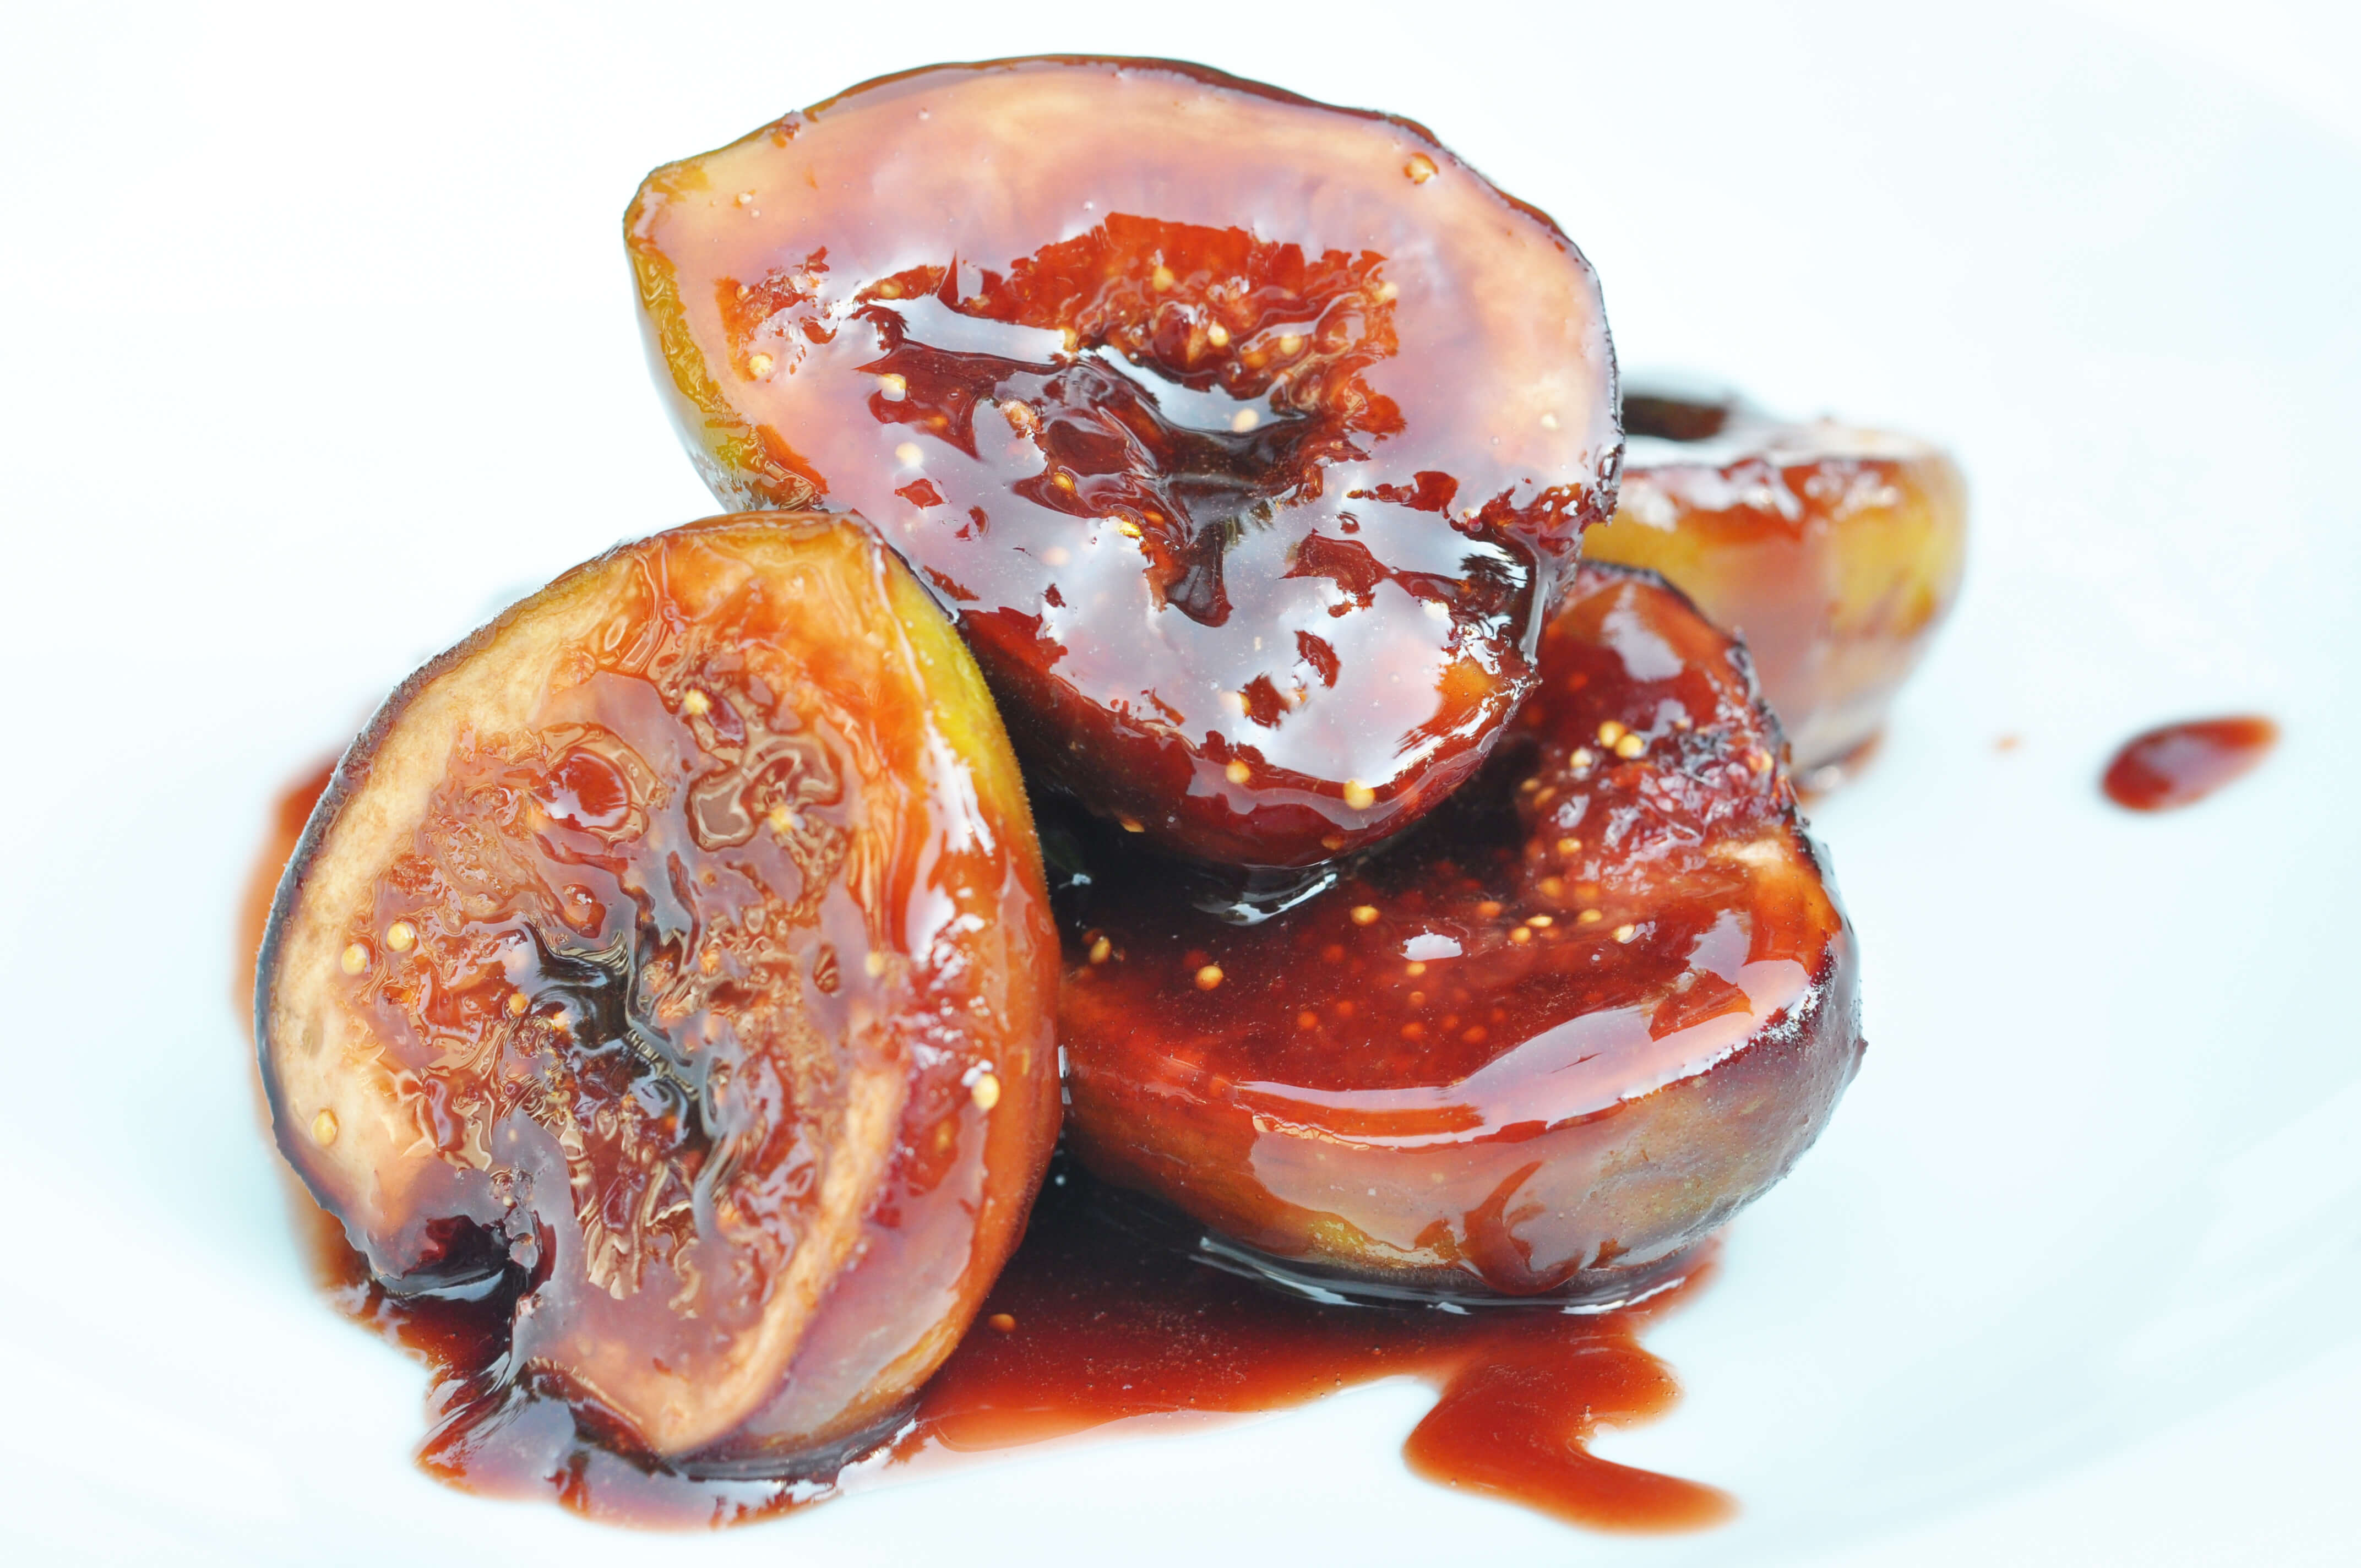 Delectable fig goodness drizzled with deliciousness